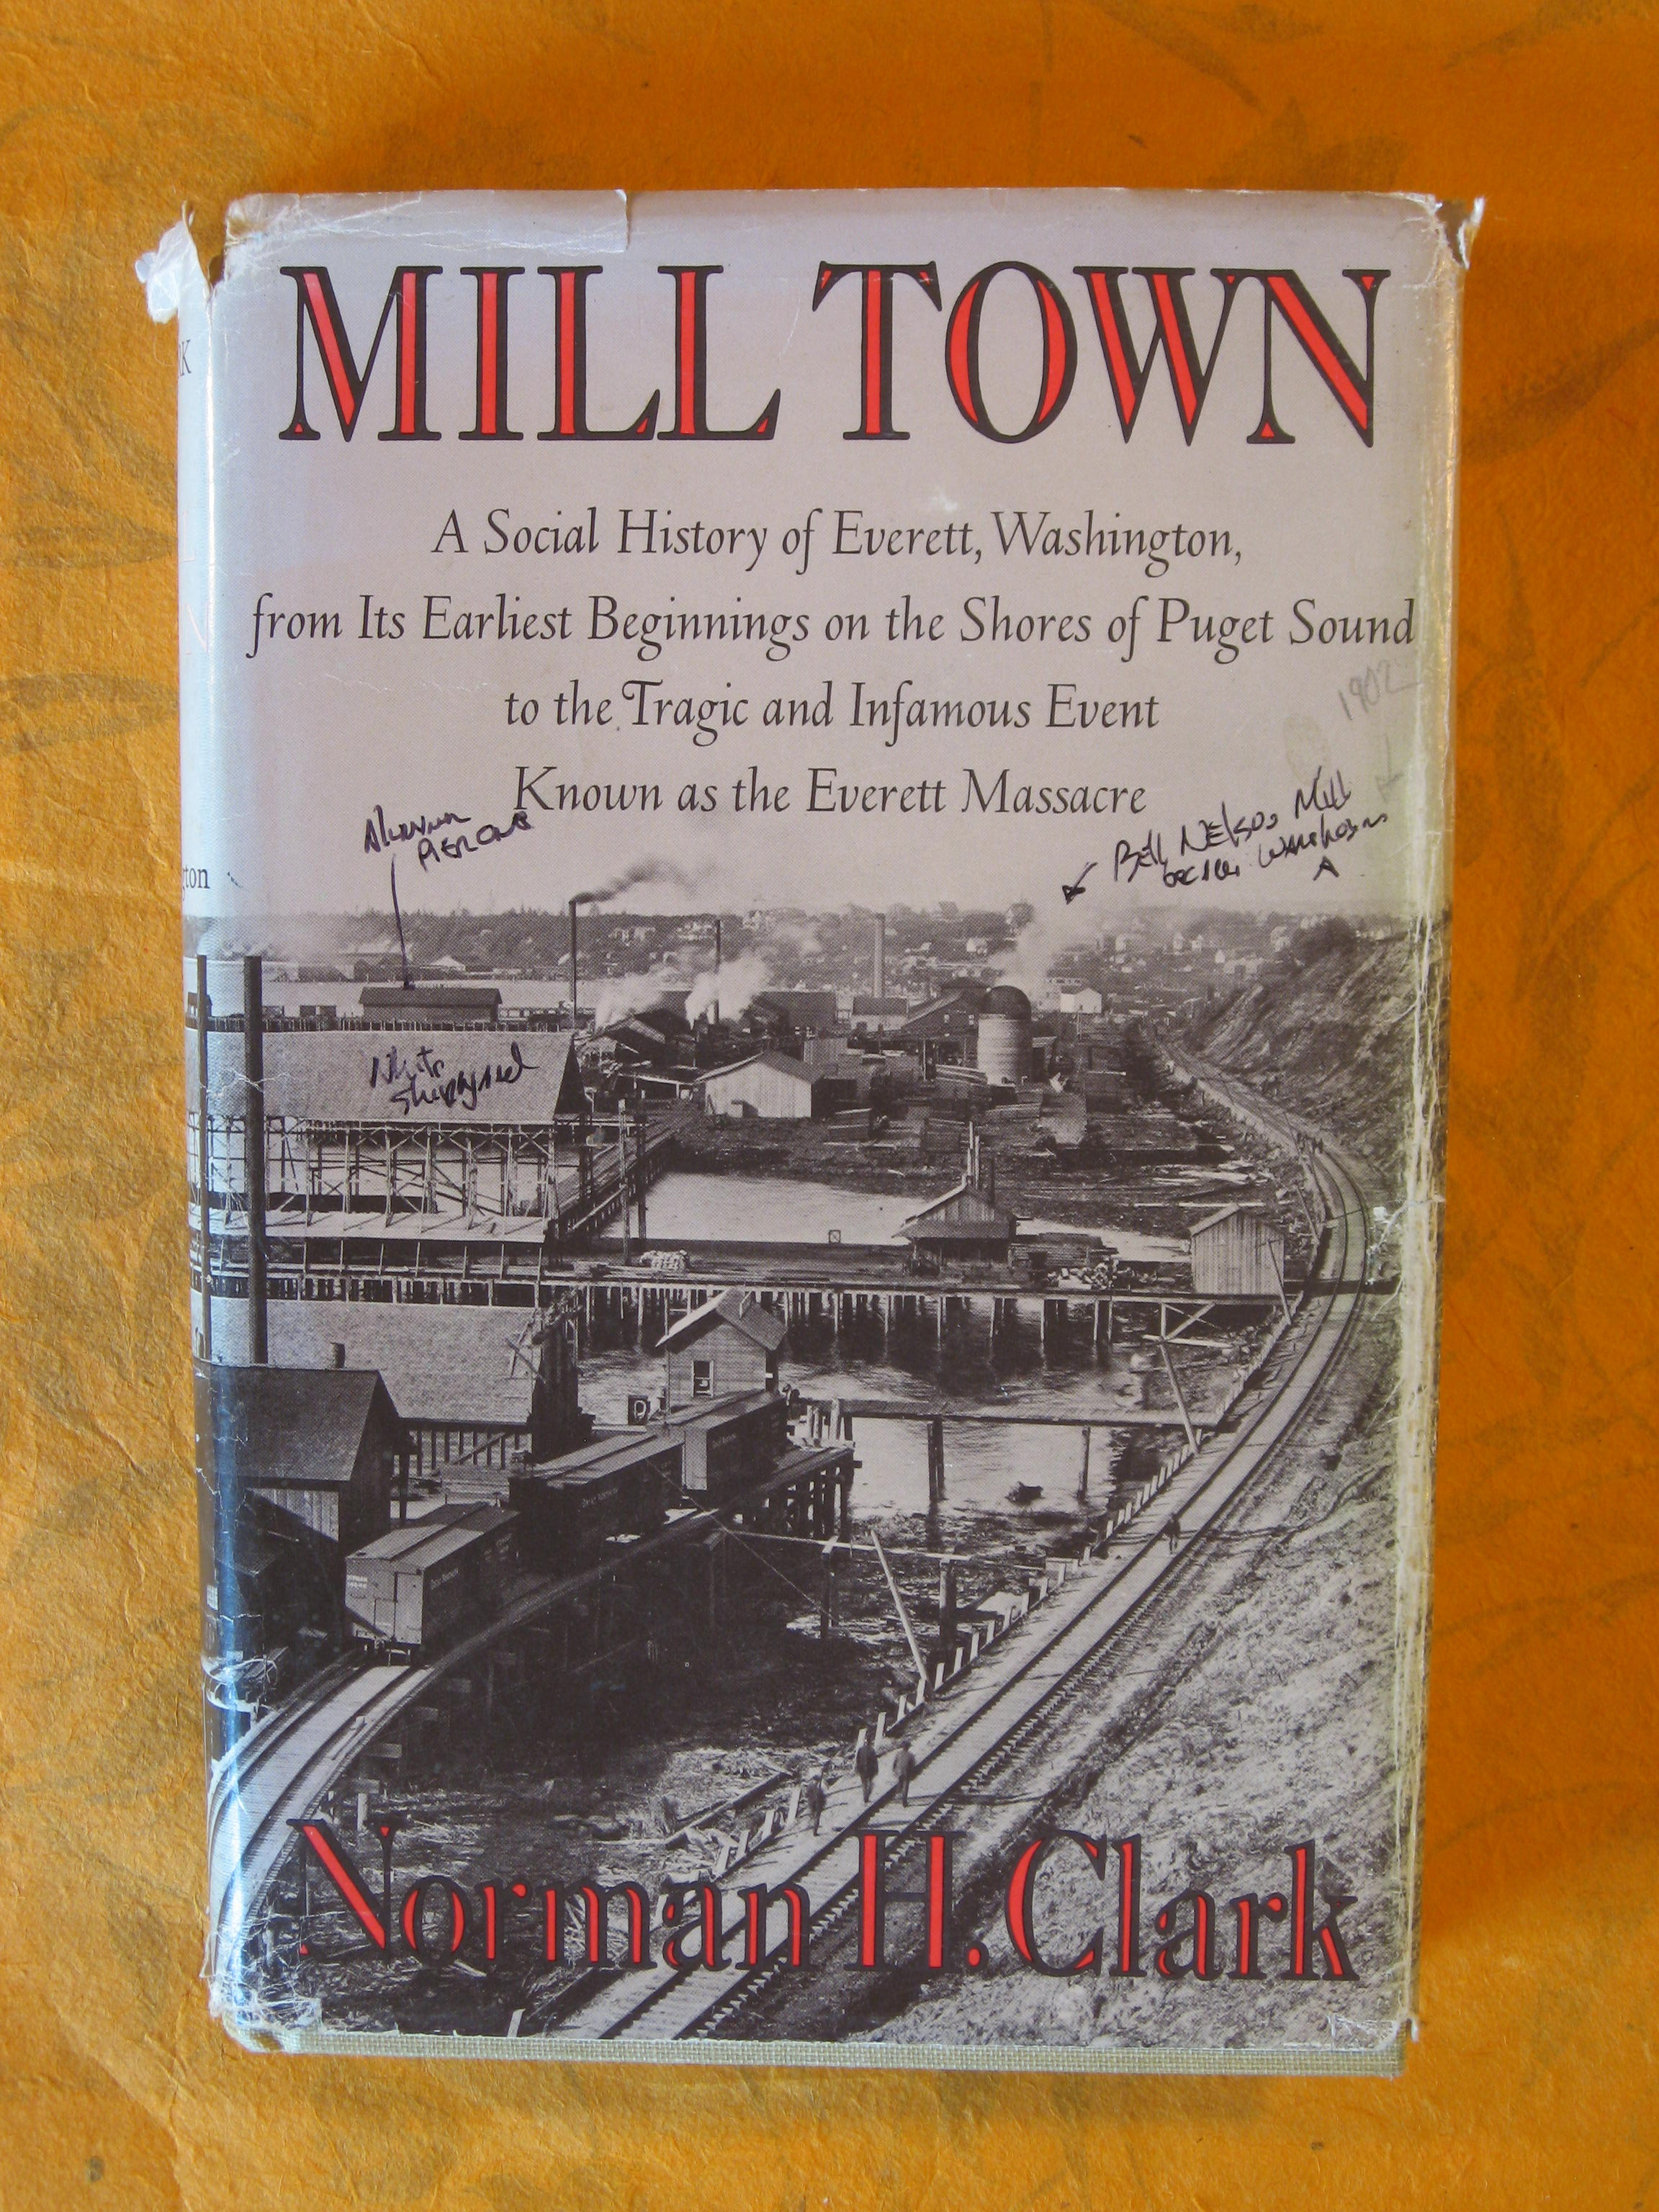 Image for Mill Town: A Social History of Everett, Washington, from its Earliest Beginnings on the Shores of Puget Sound to the Tragic and Infamous Event Known As the Everett Massacre